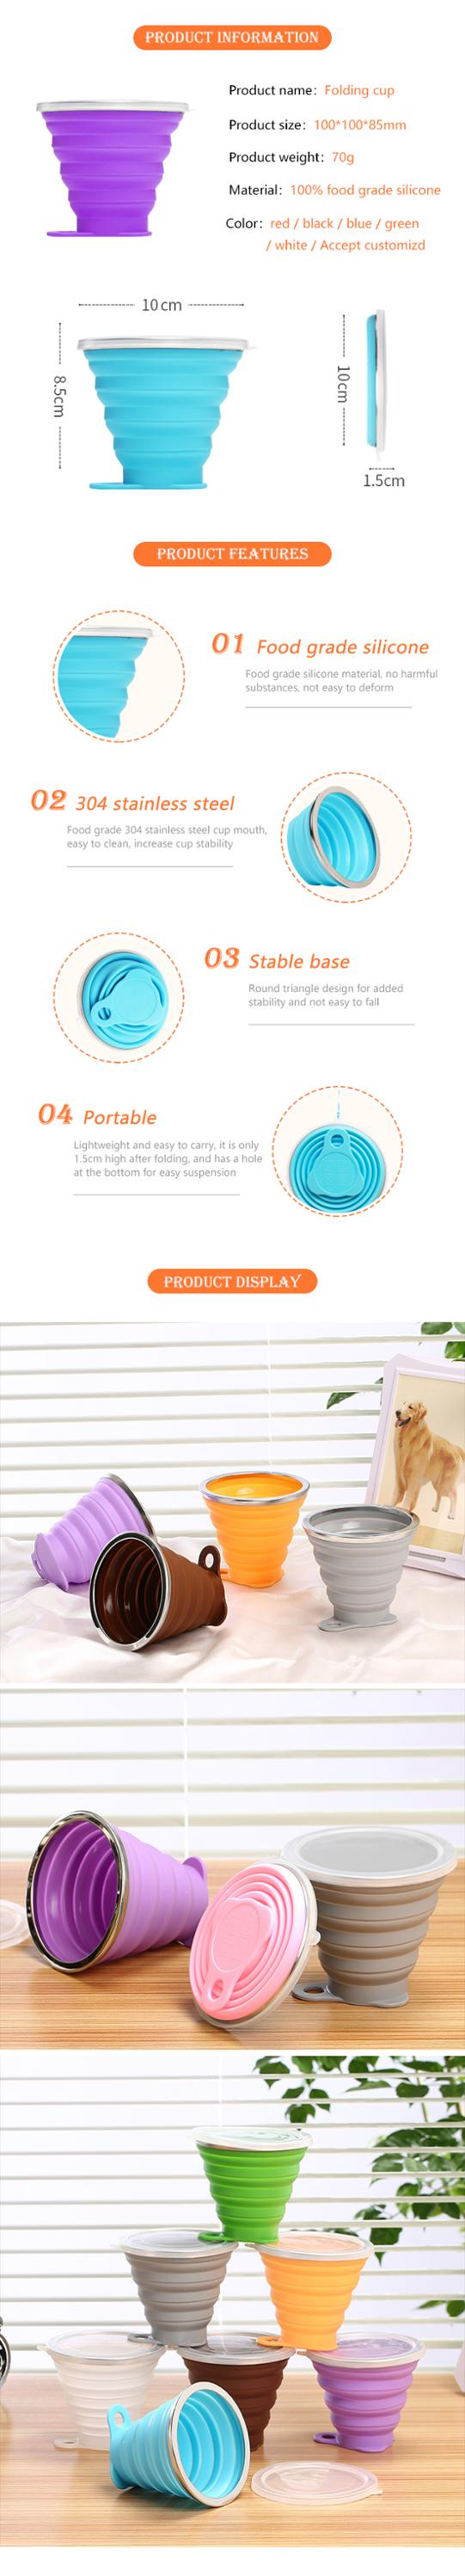 Portable Silicone Collapsible Travel Cup Silicone Folding Camping Cup with Lids